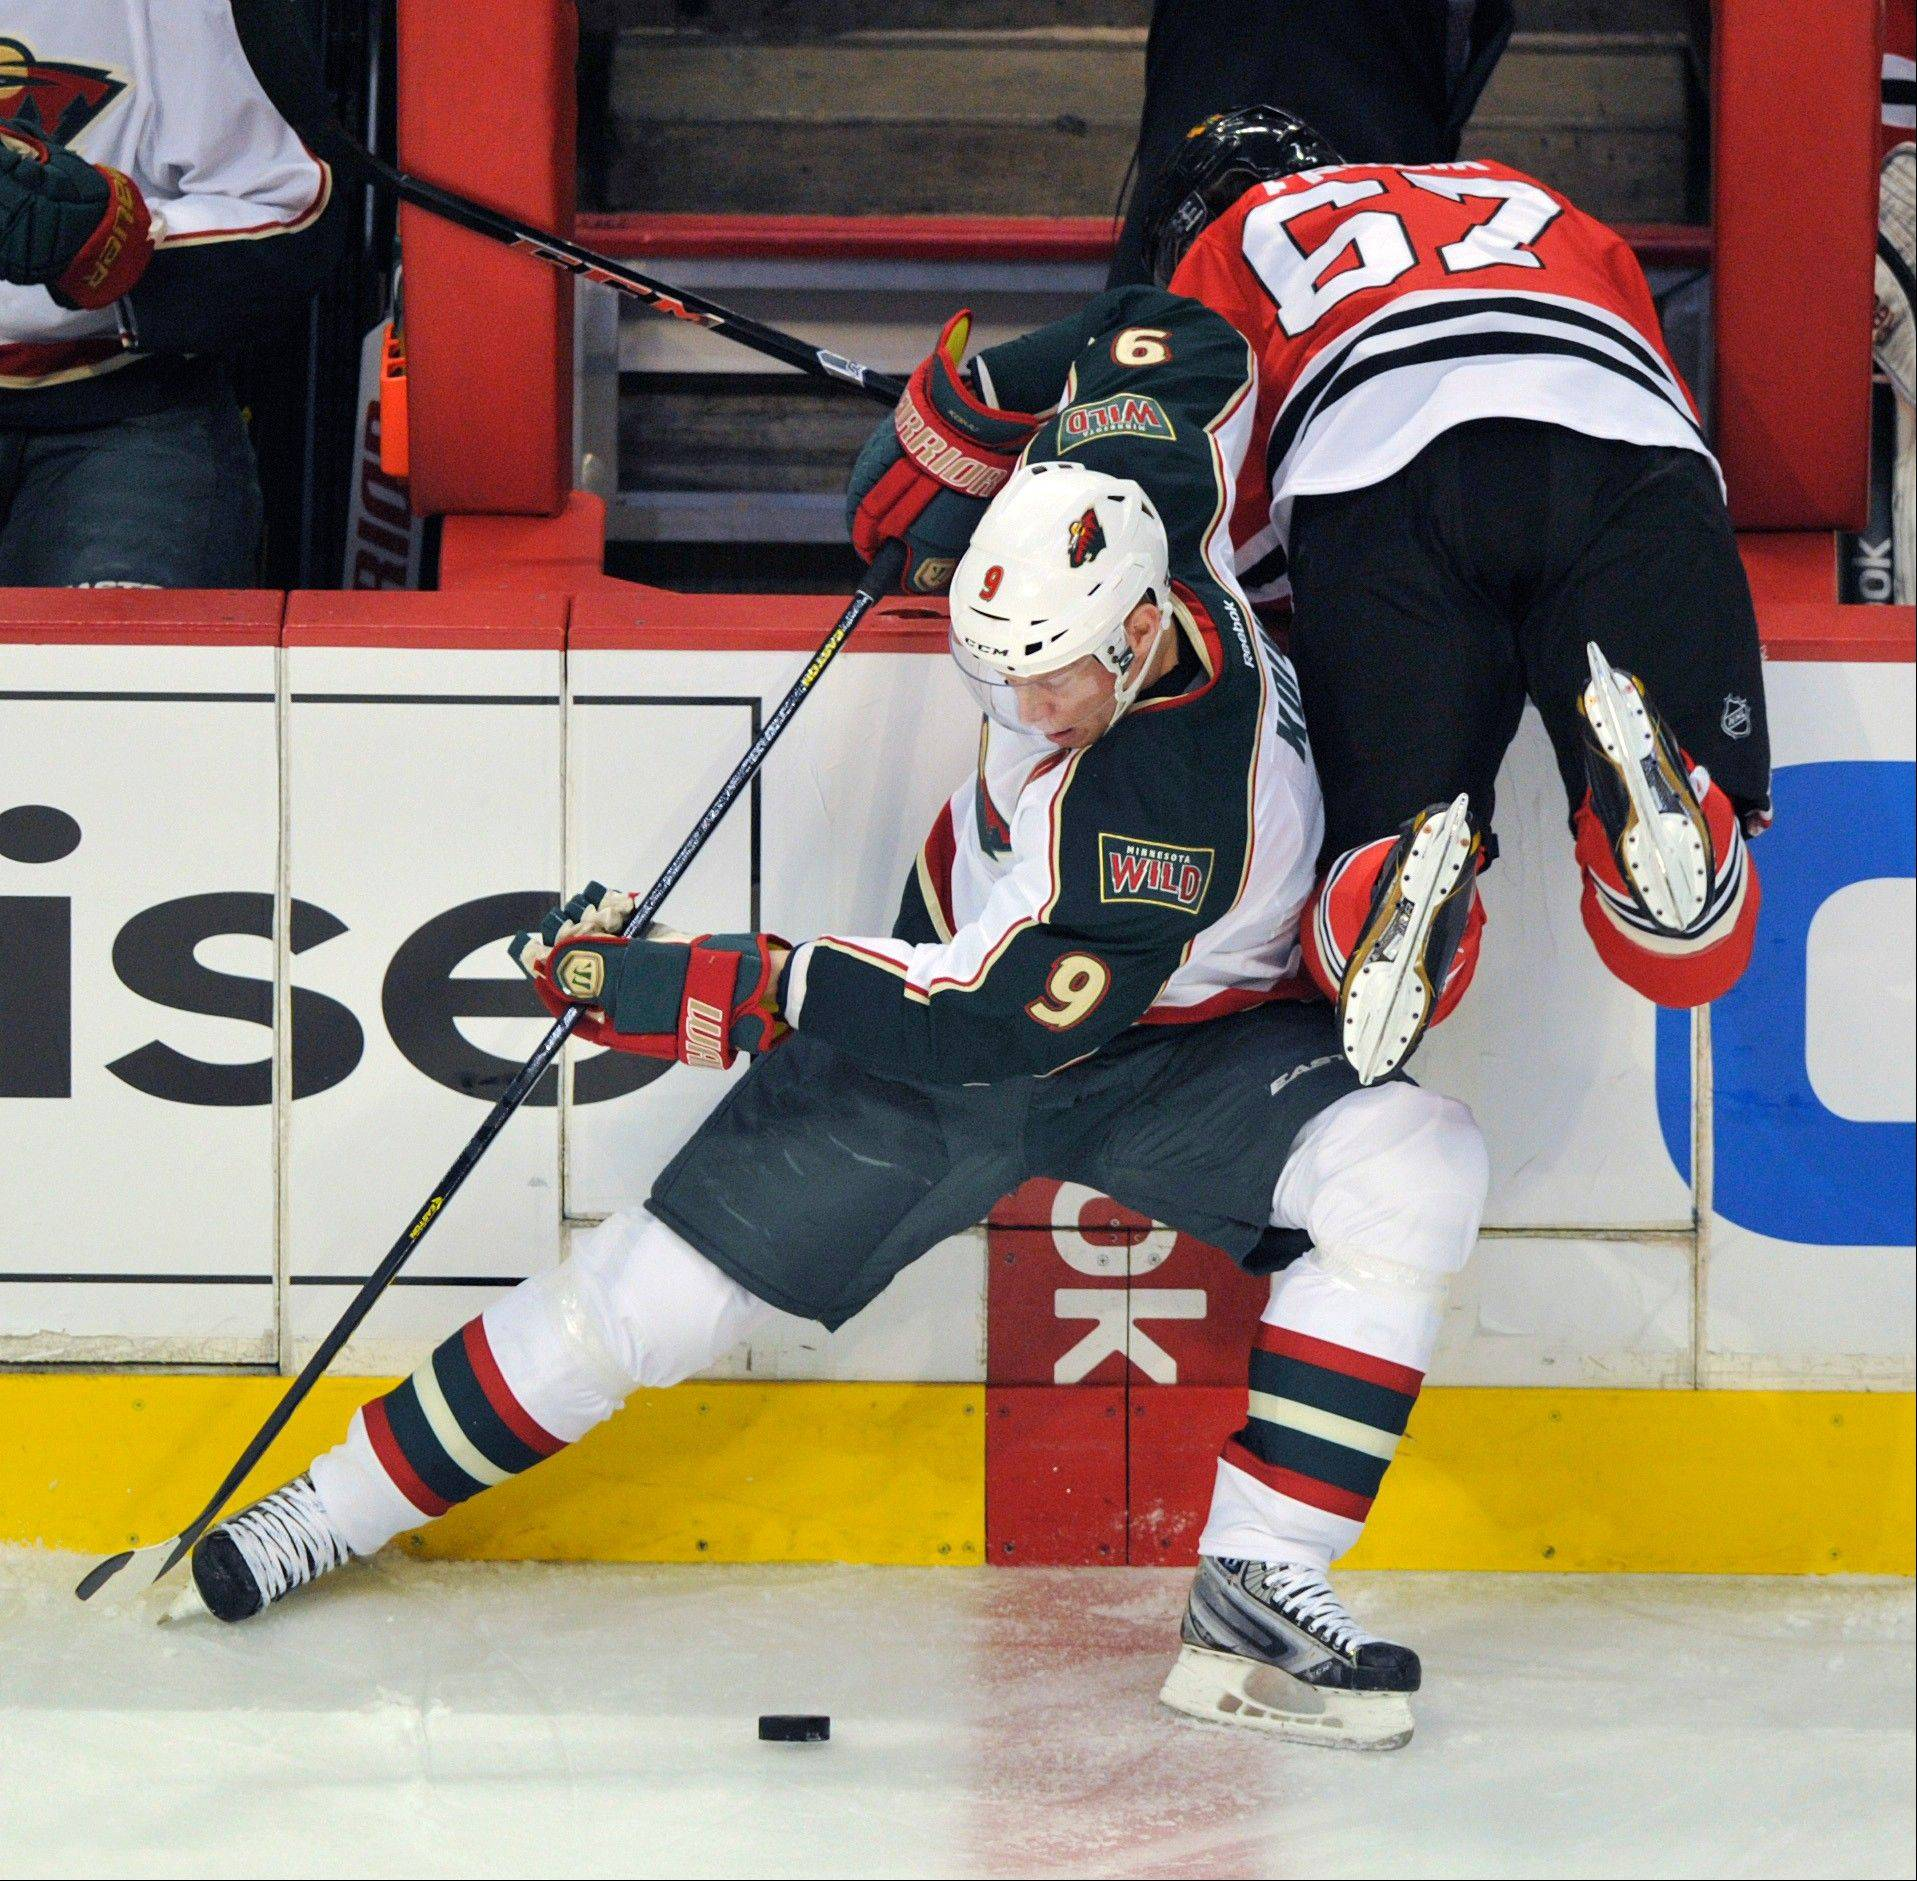 Minnesota Wild's Mikko Koivu (9) tries to control the puck as Chicago Blackhawks' Michael Frolik (67) crashes over the boards during the first period of Game 1 of an NHL hockey Stanley Cup playoff series, Tuesday, April 30, 2013, in Chicago.